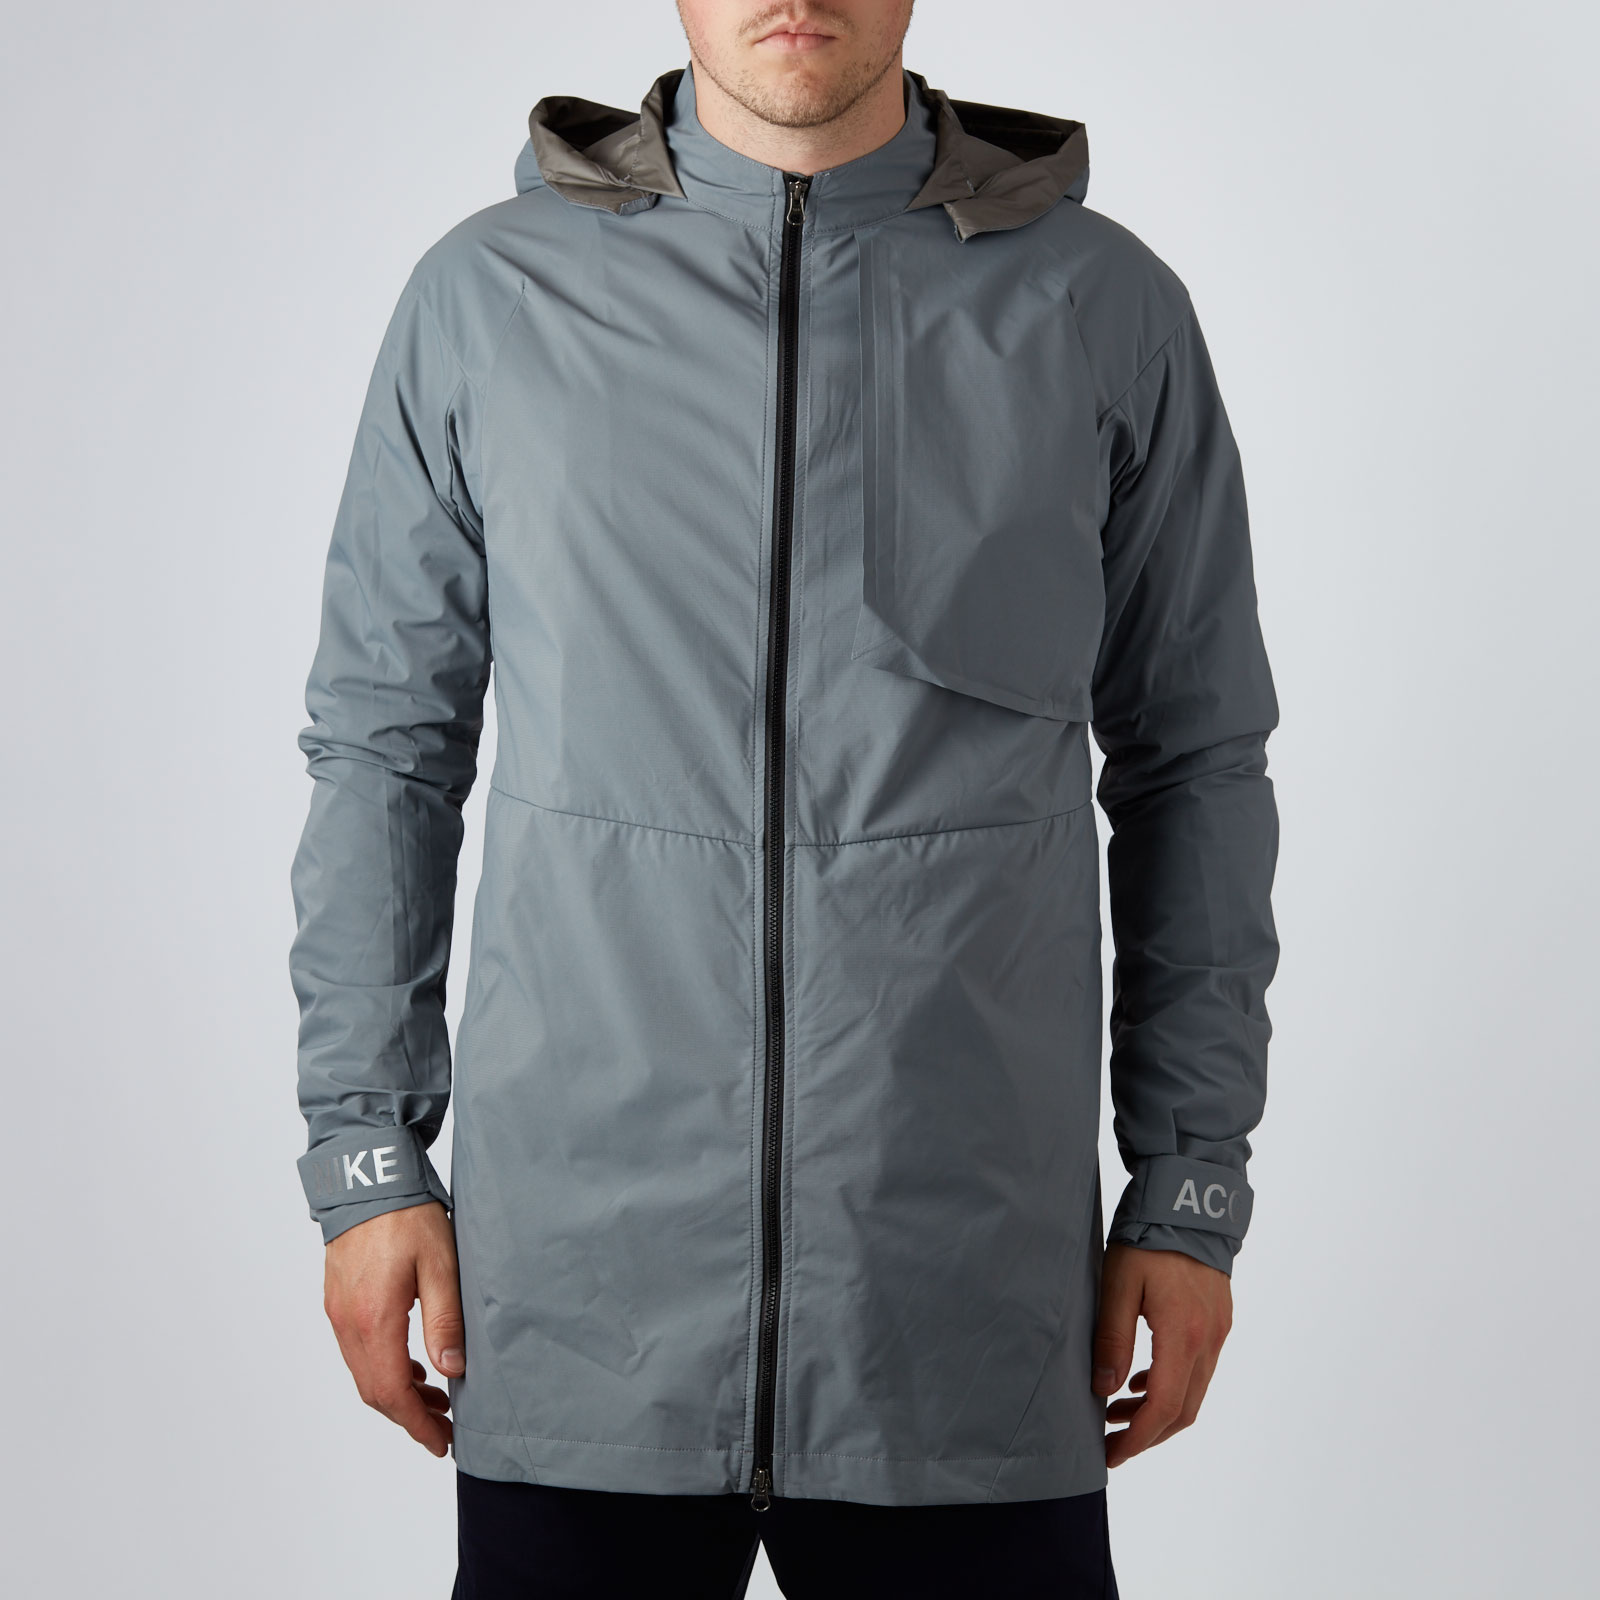 cf9c09cd7c12 Nike NikeLab ACG Packable Jacket - 829584-021 - Sneakersnstuff ...